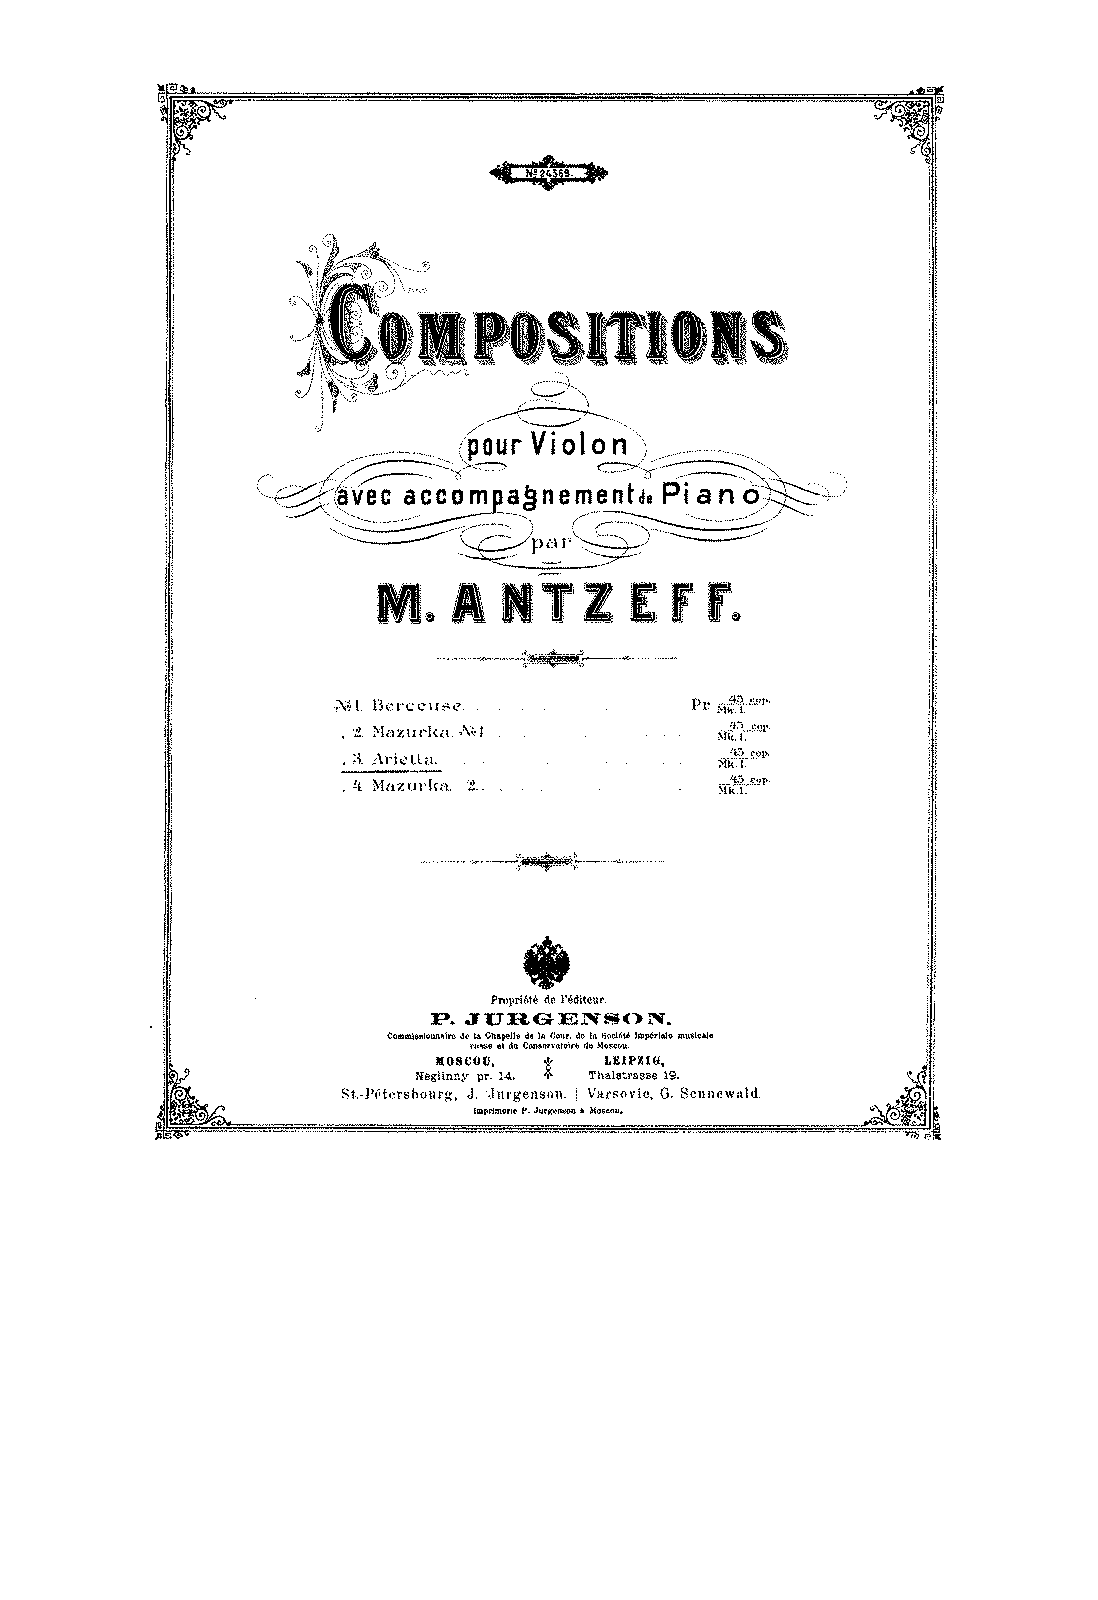 SIBLEY1802.10815.f2f5-39087004900884compositions 3.pdf